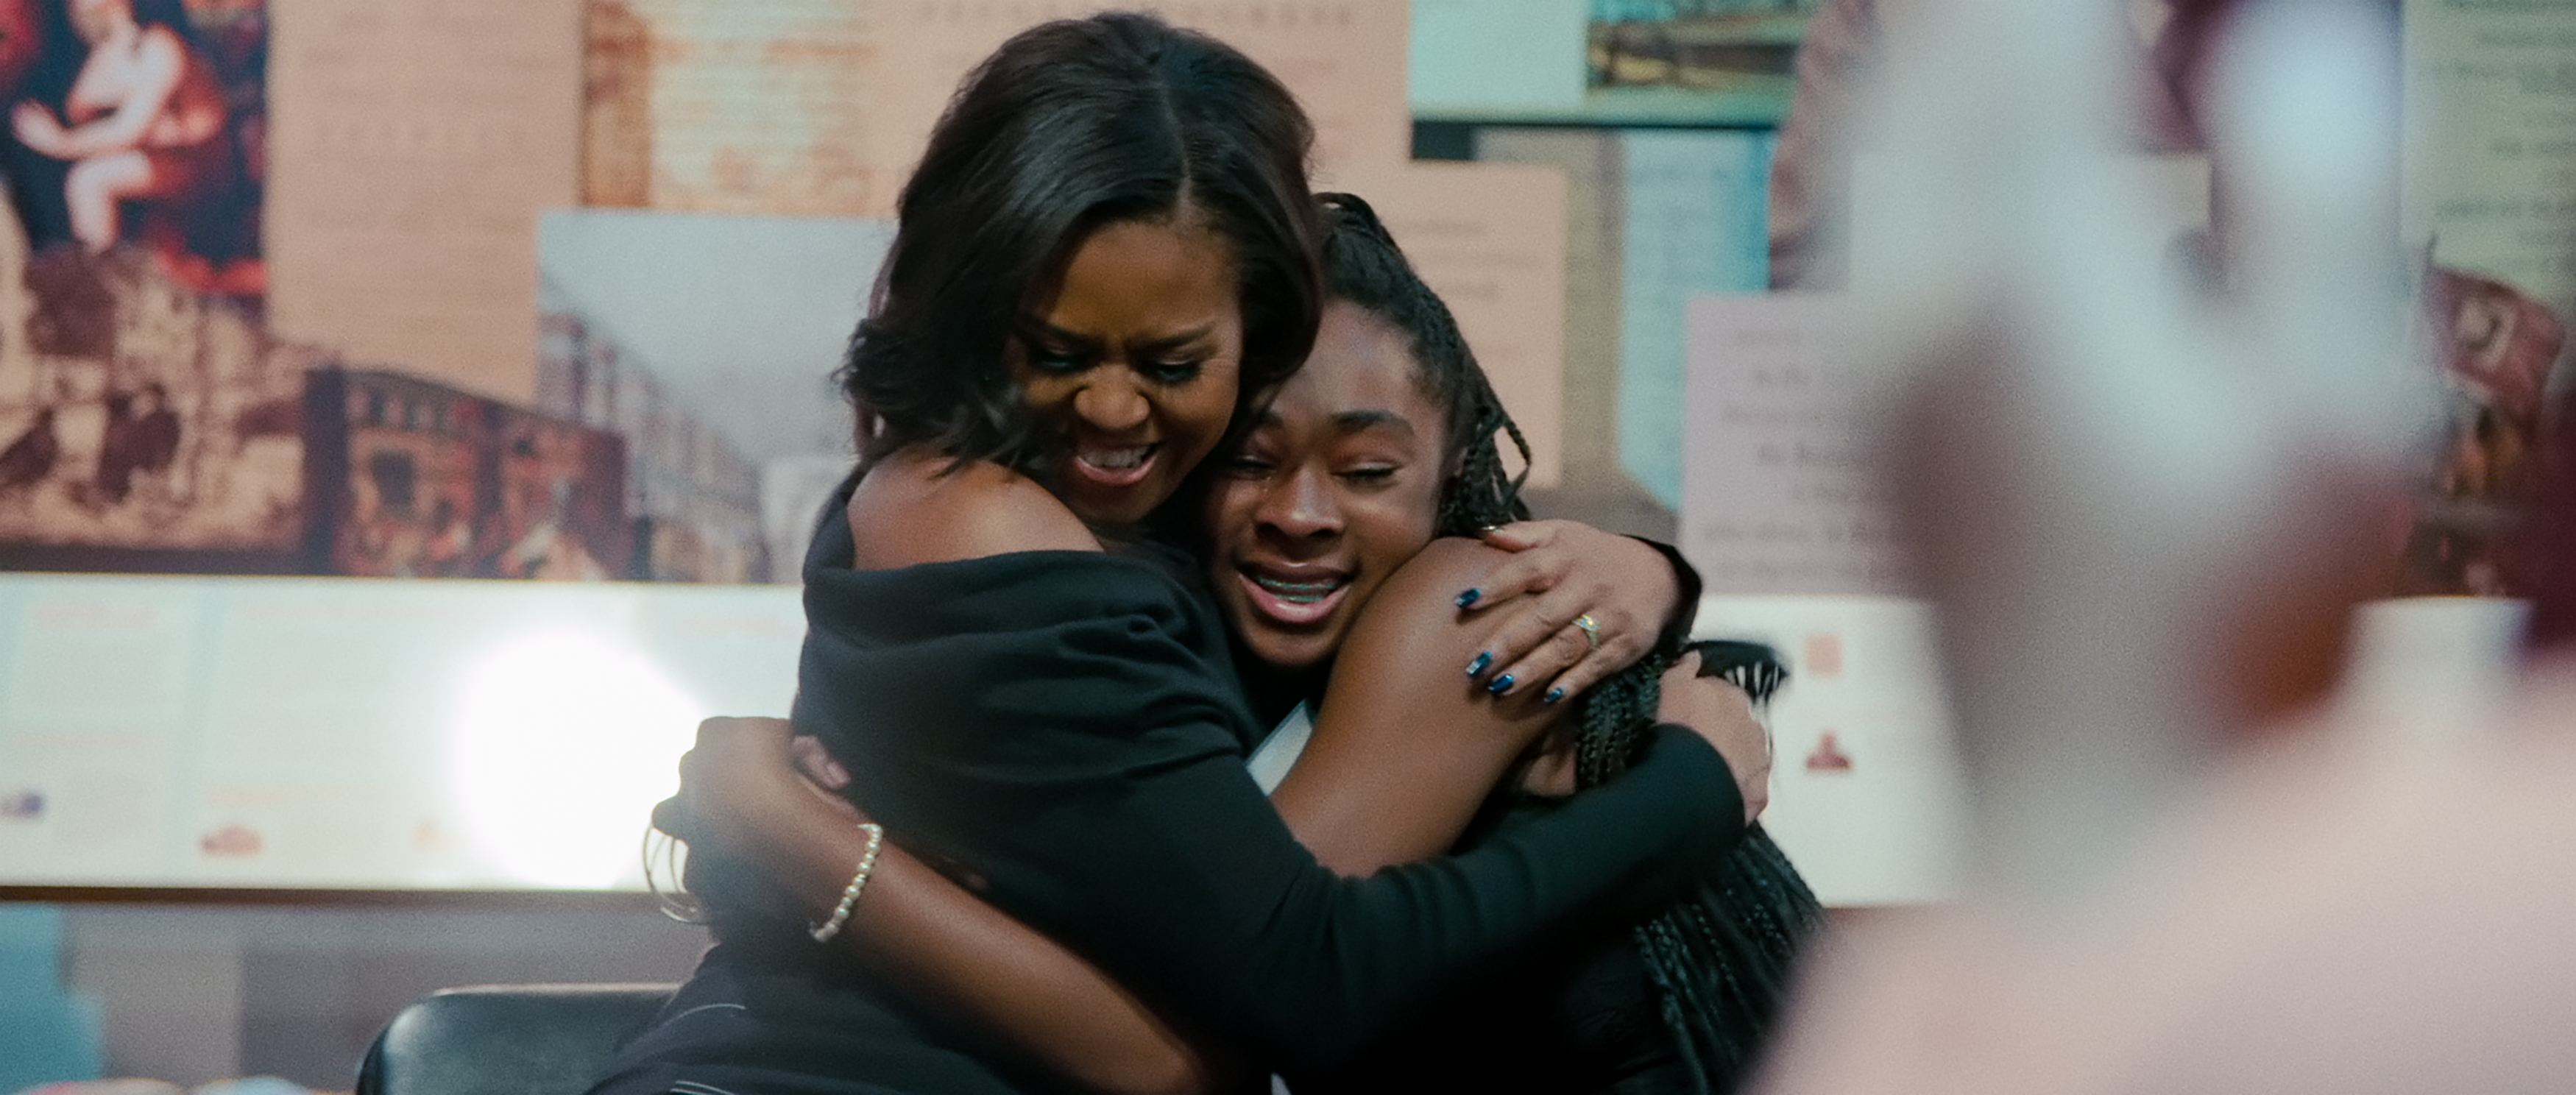 Emmys 2020, Emmy Awards, 2020, nominations, Netflix, shows, series, Becoming, Michelle Obama